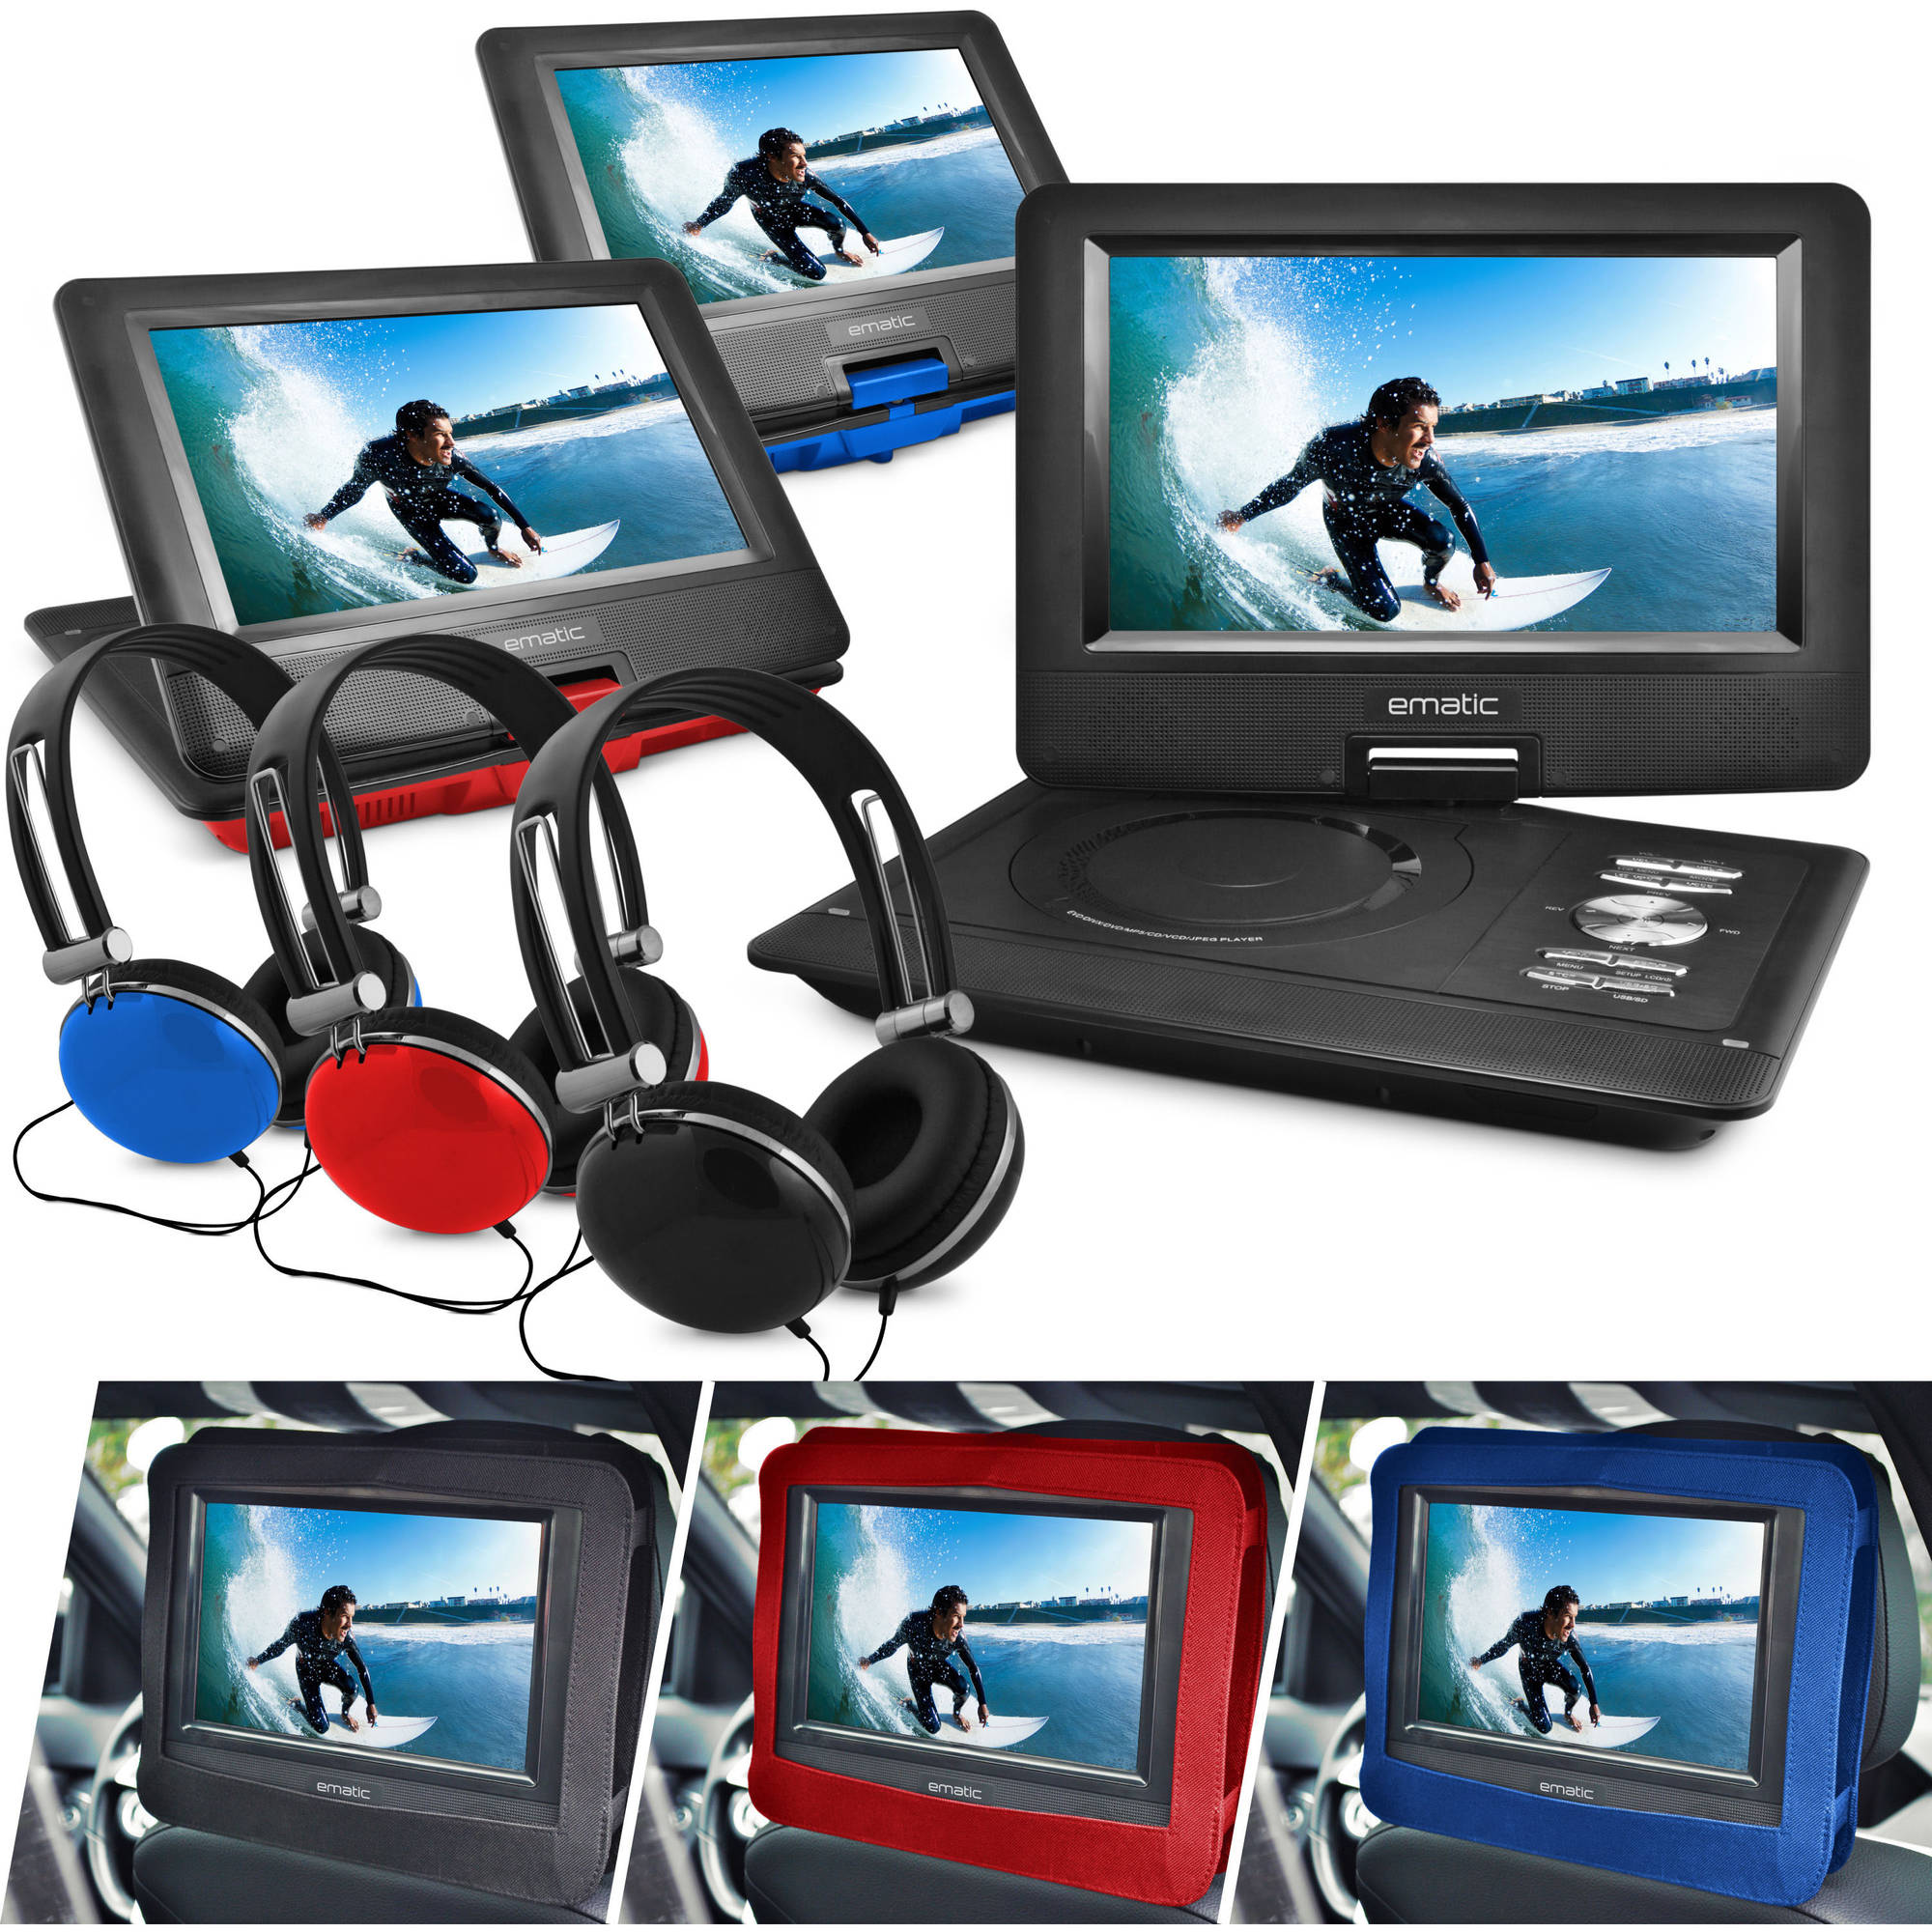 ematic 10 portable dvd player with headphones and car headrest mount walmartcom